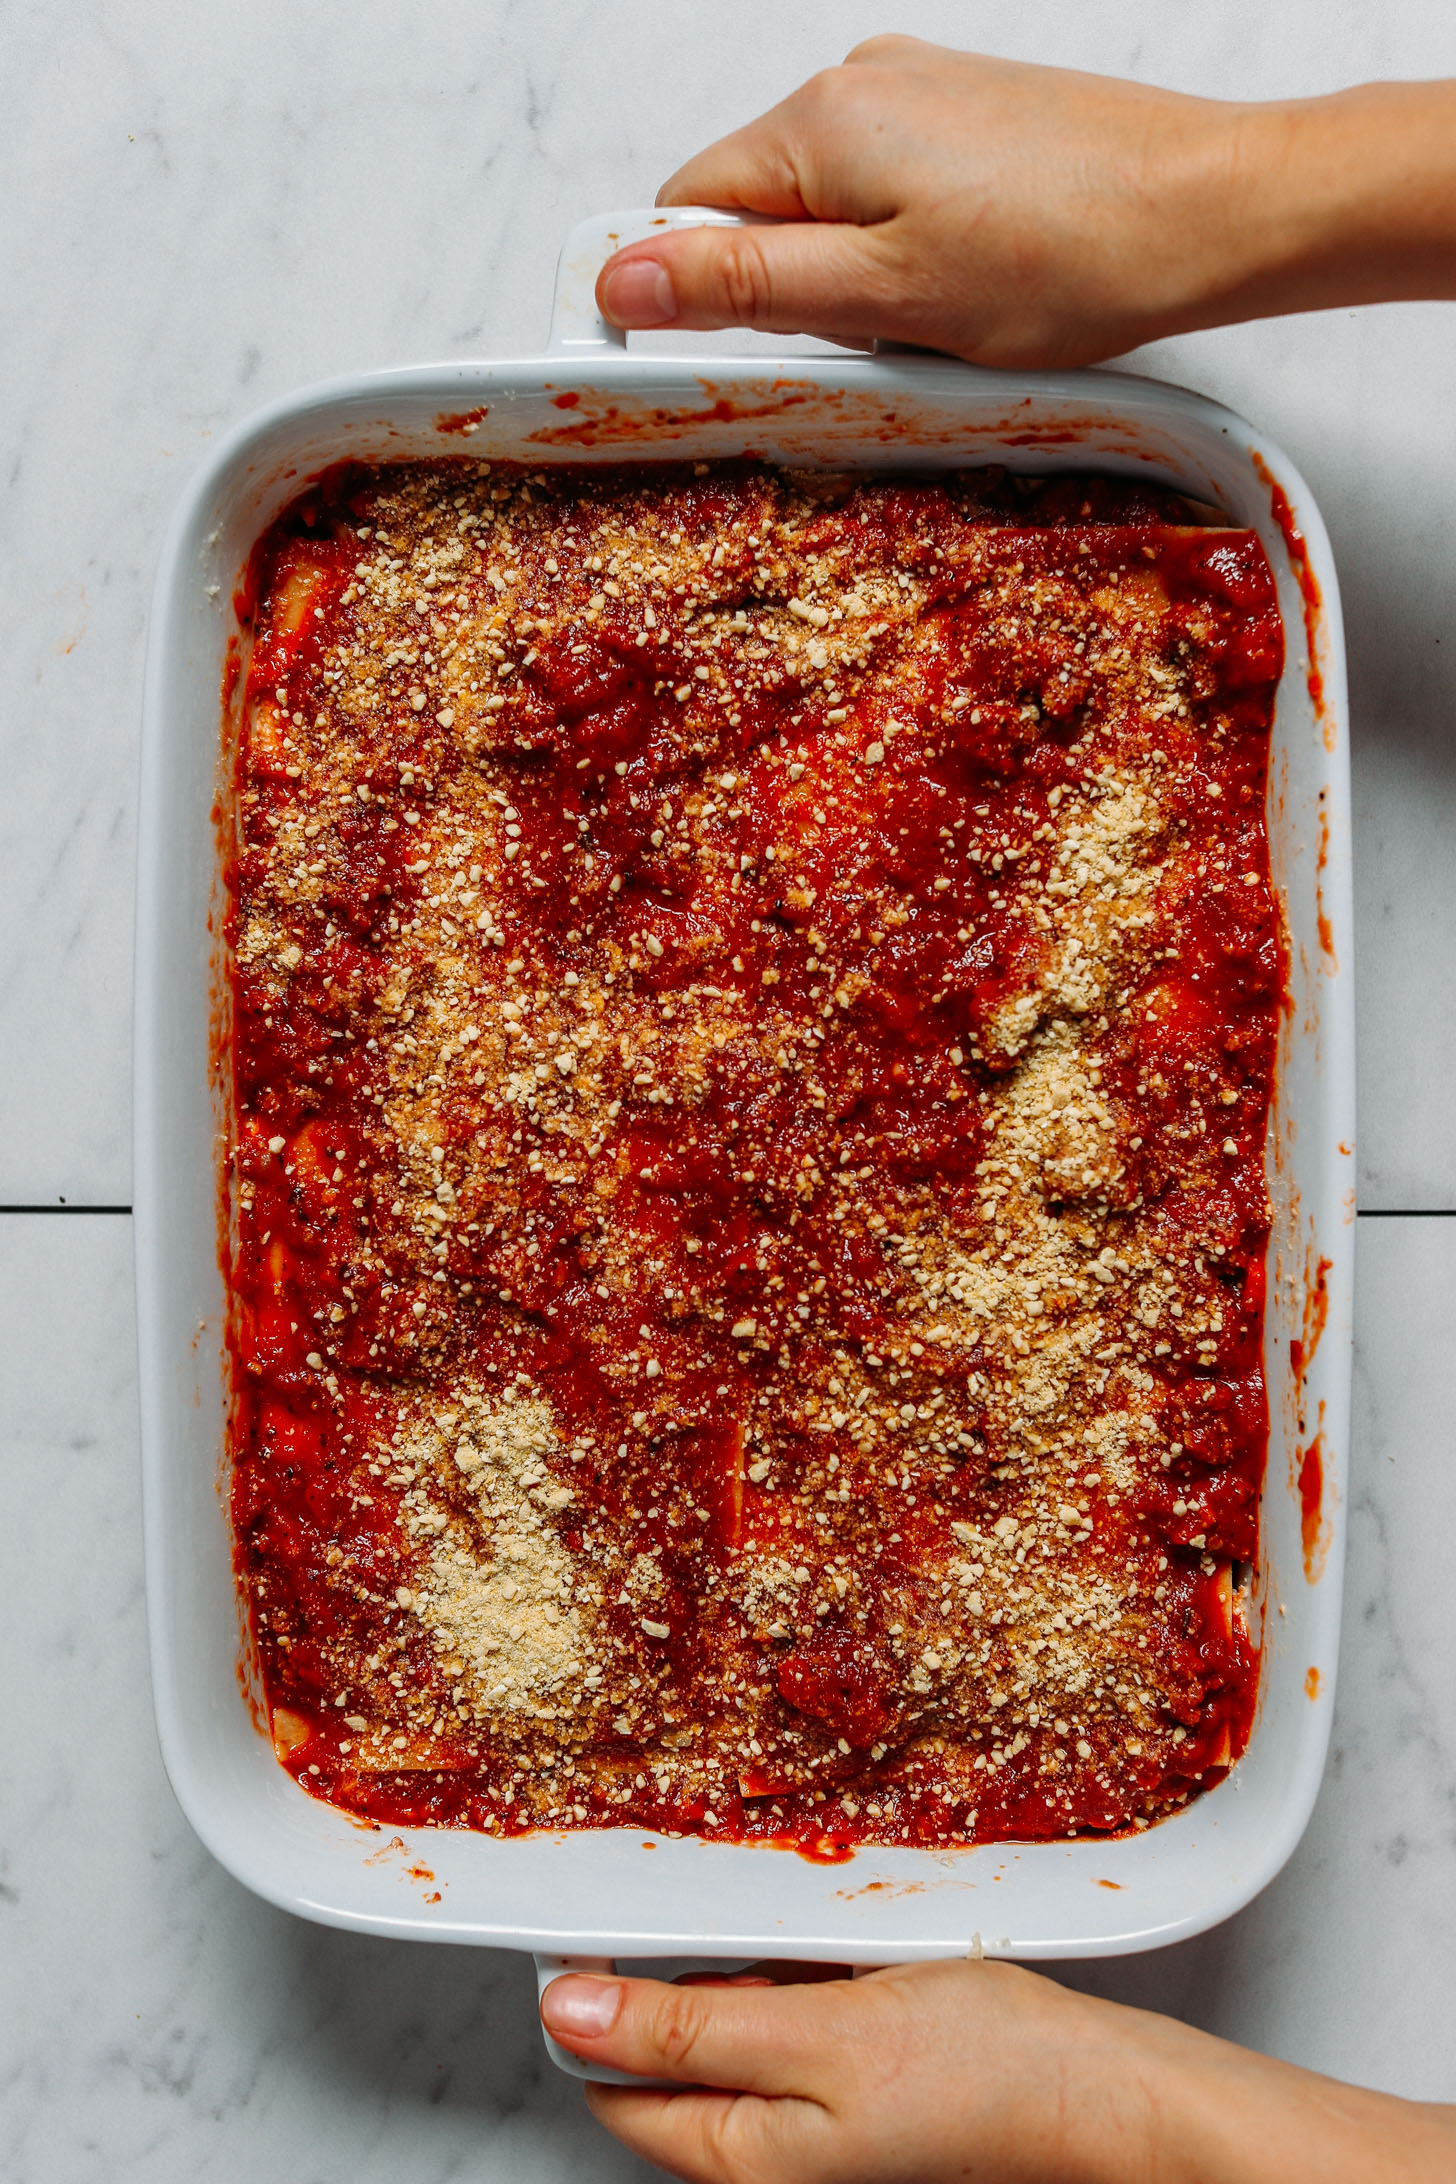 Holding the handles of a pan of our Dairy-Free Gluten-Free Lasagna recipe